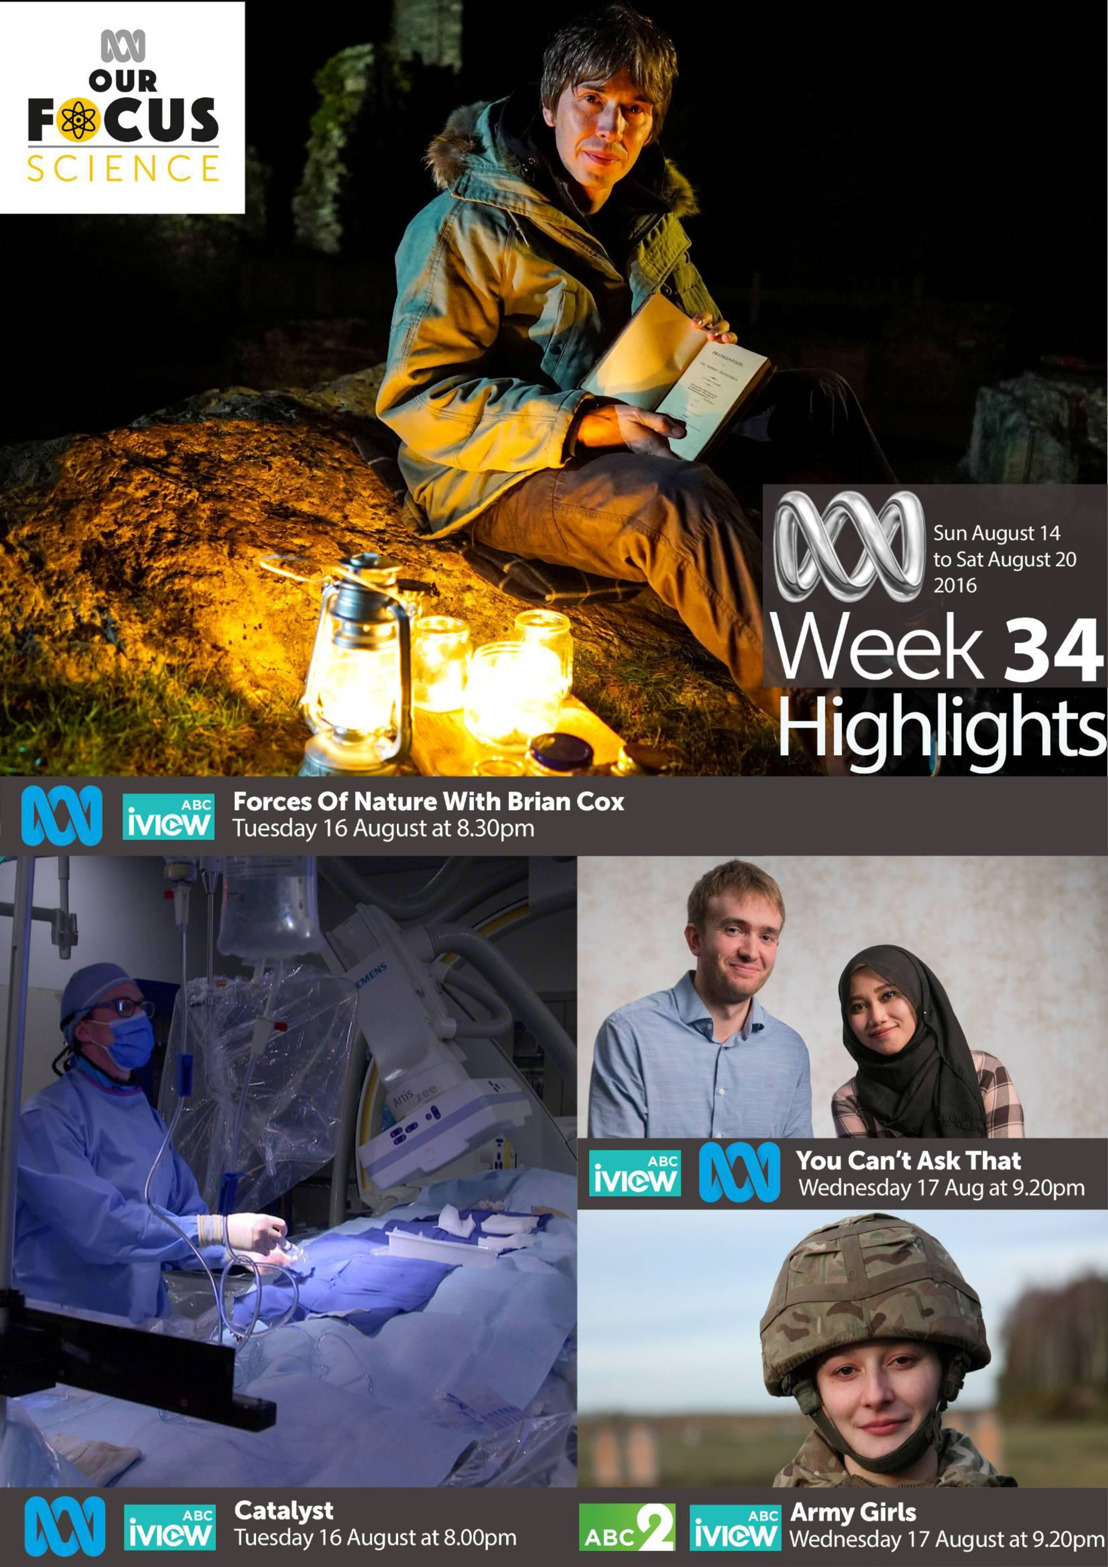 ABC Program Highlights - Week 34